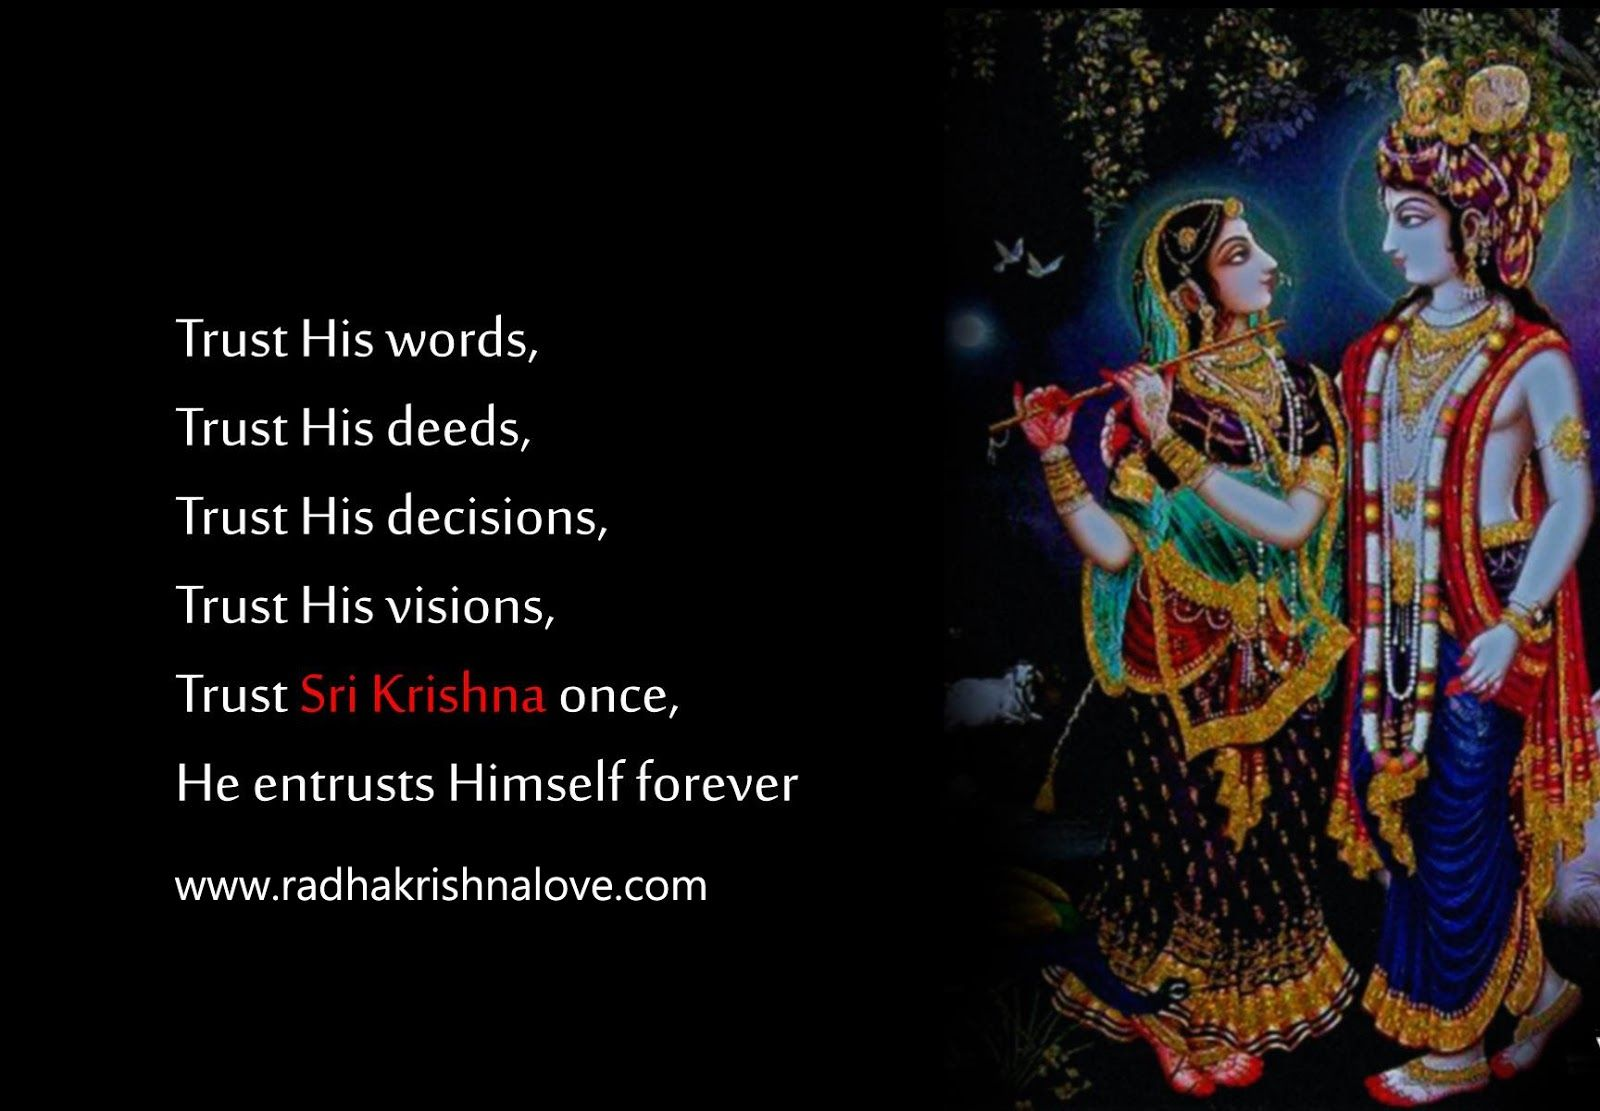 Radha Krishna Quotes On Love In English Radha Krishna Pinterest